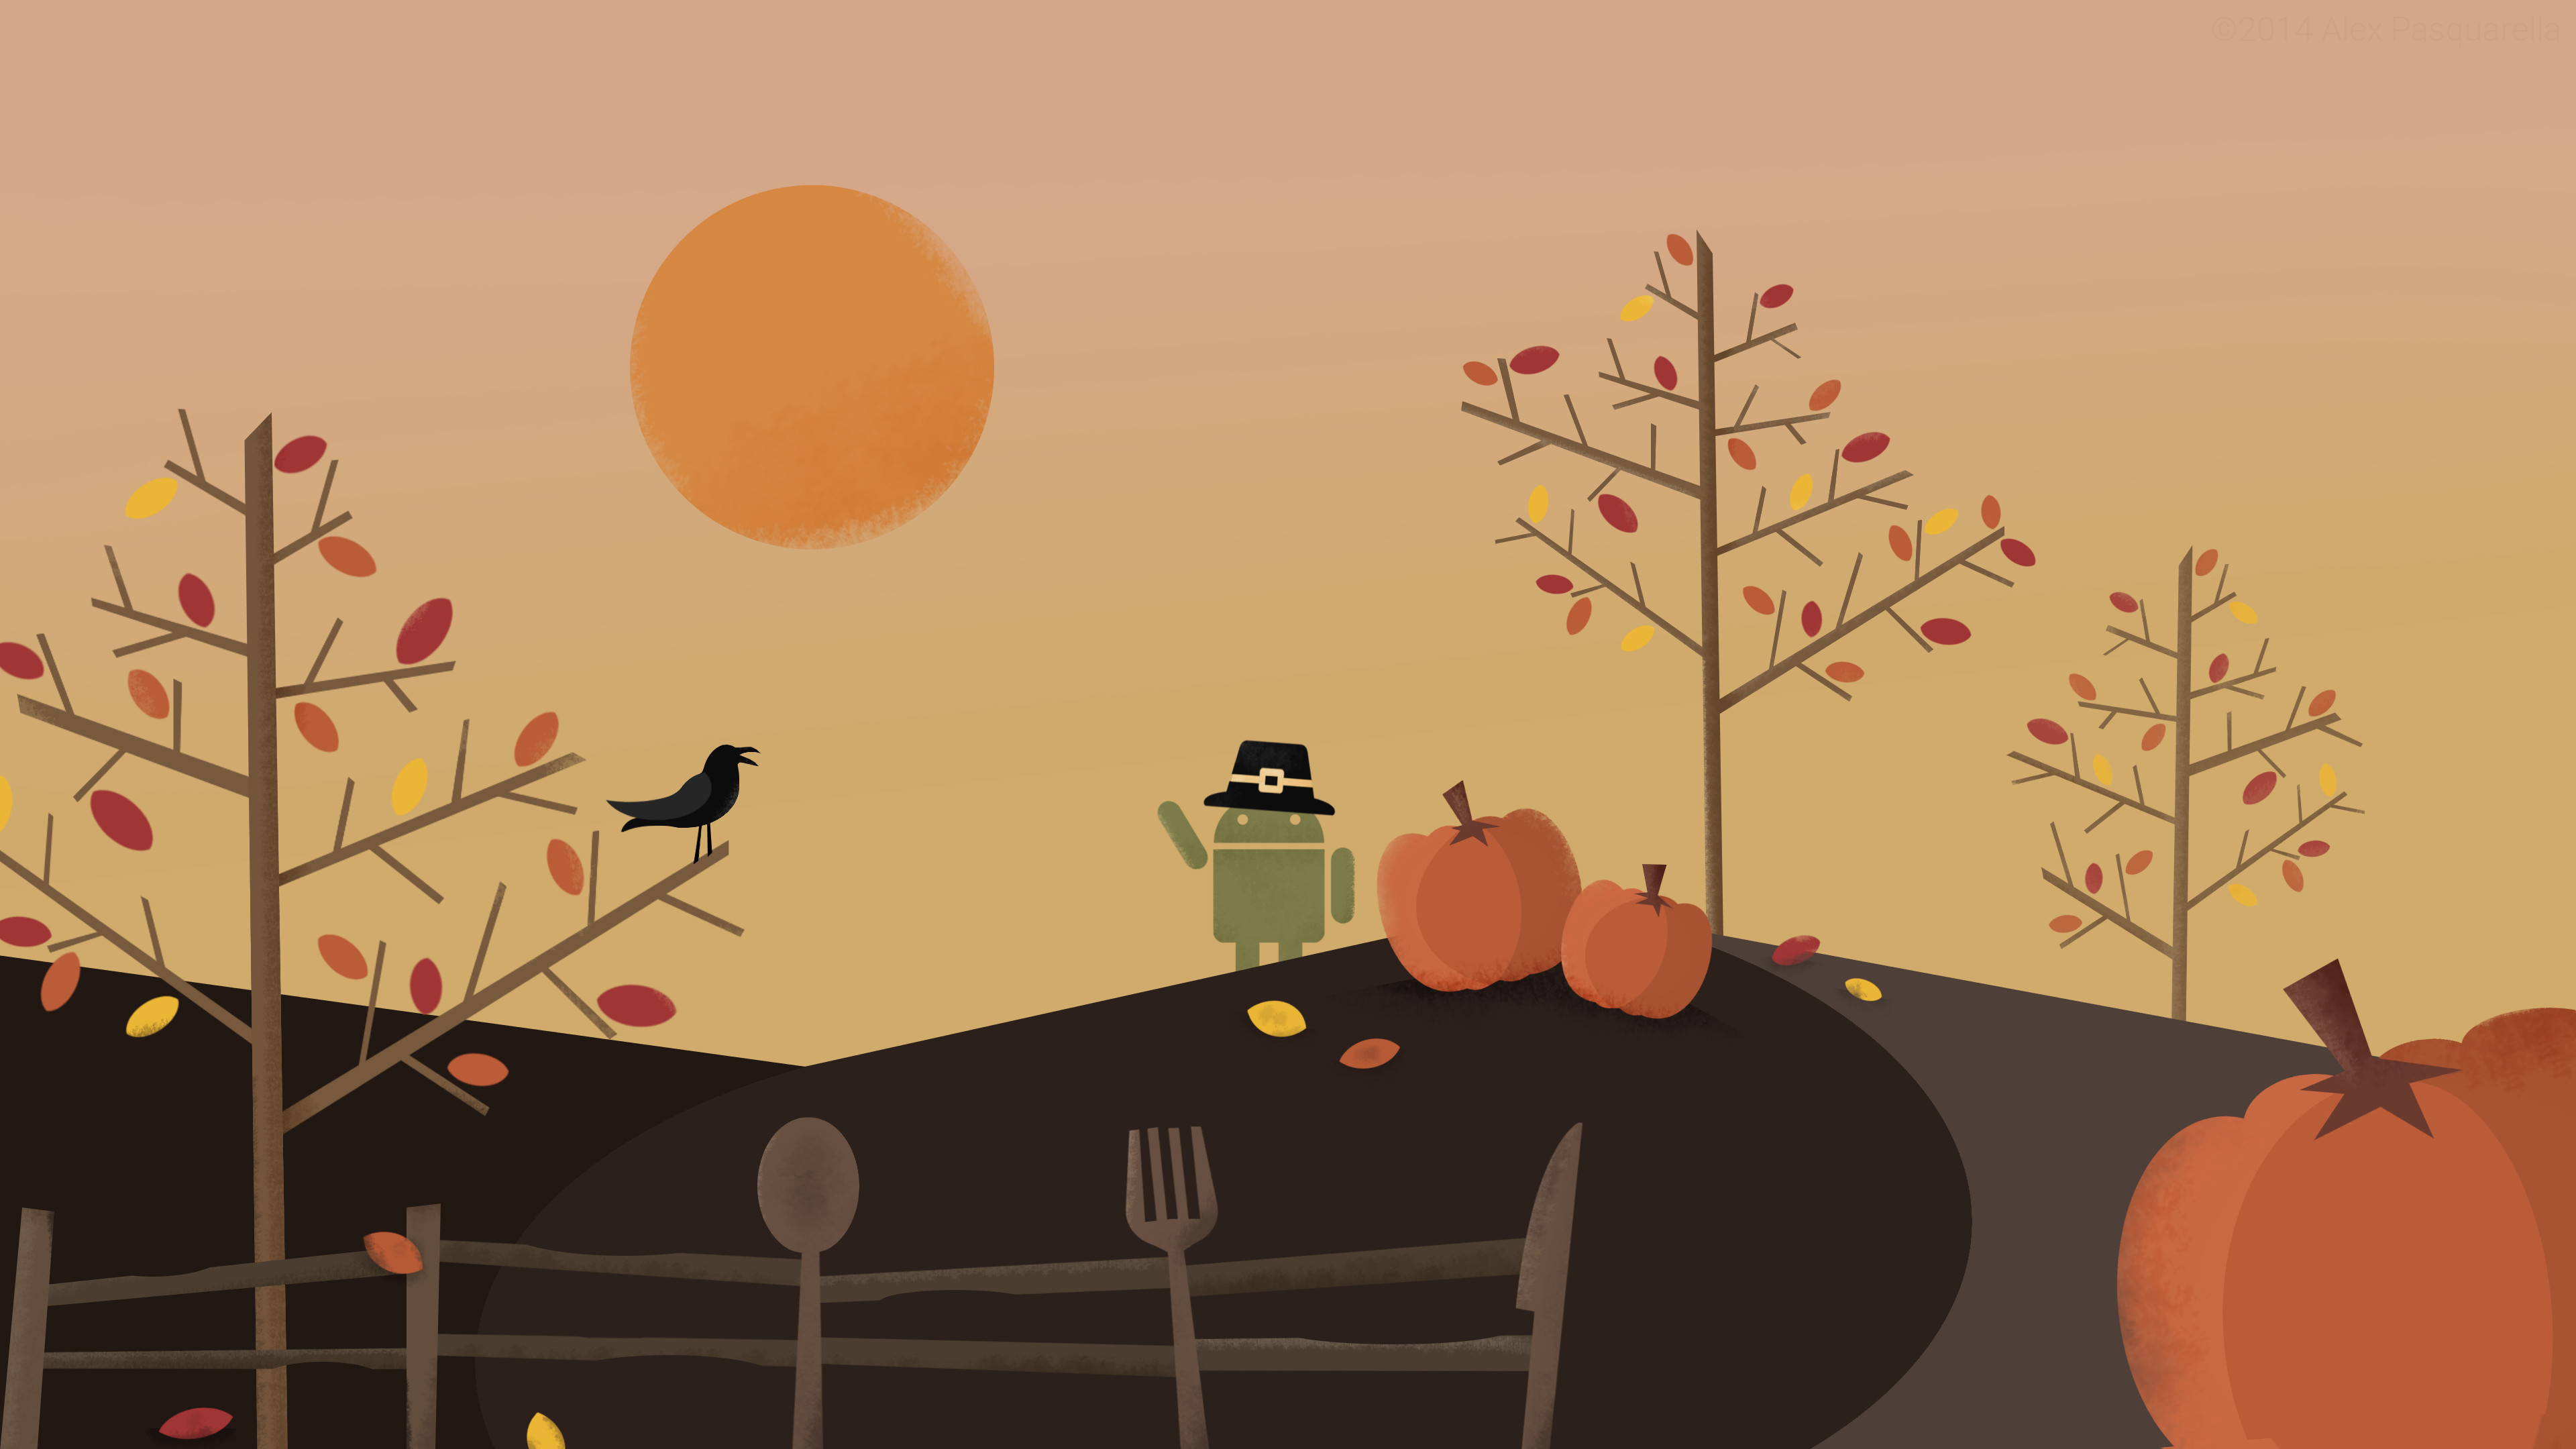 Res: 3840x2160, Thanksgiving Wallpaper 2016 Dr. Odd - HD Wallpapers